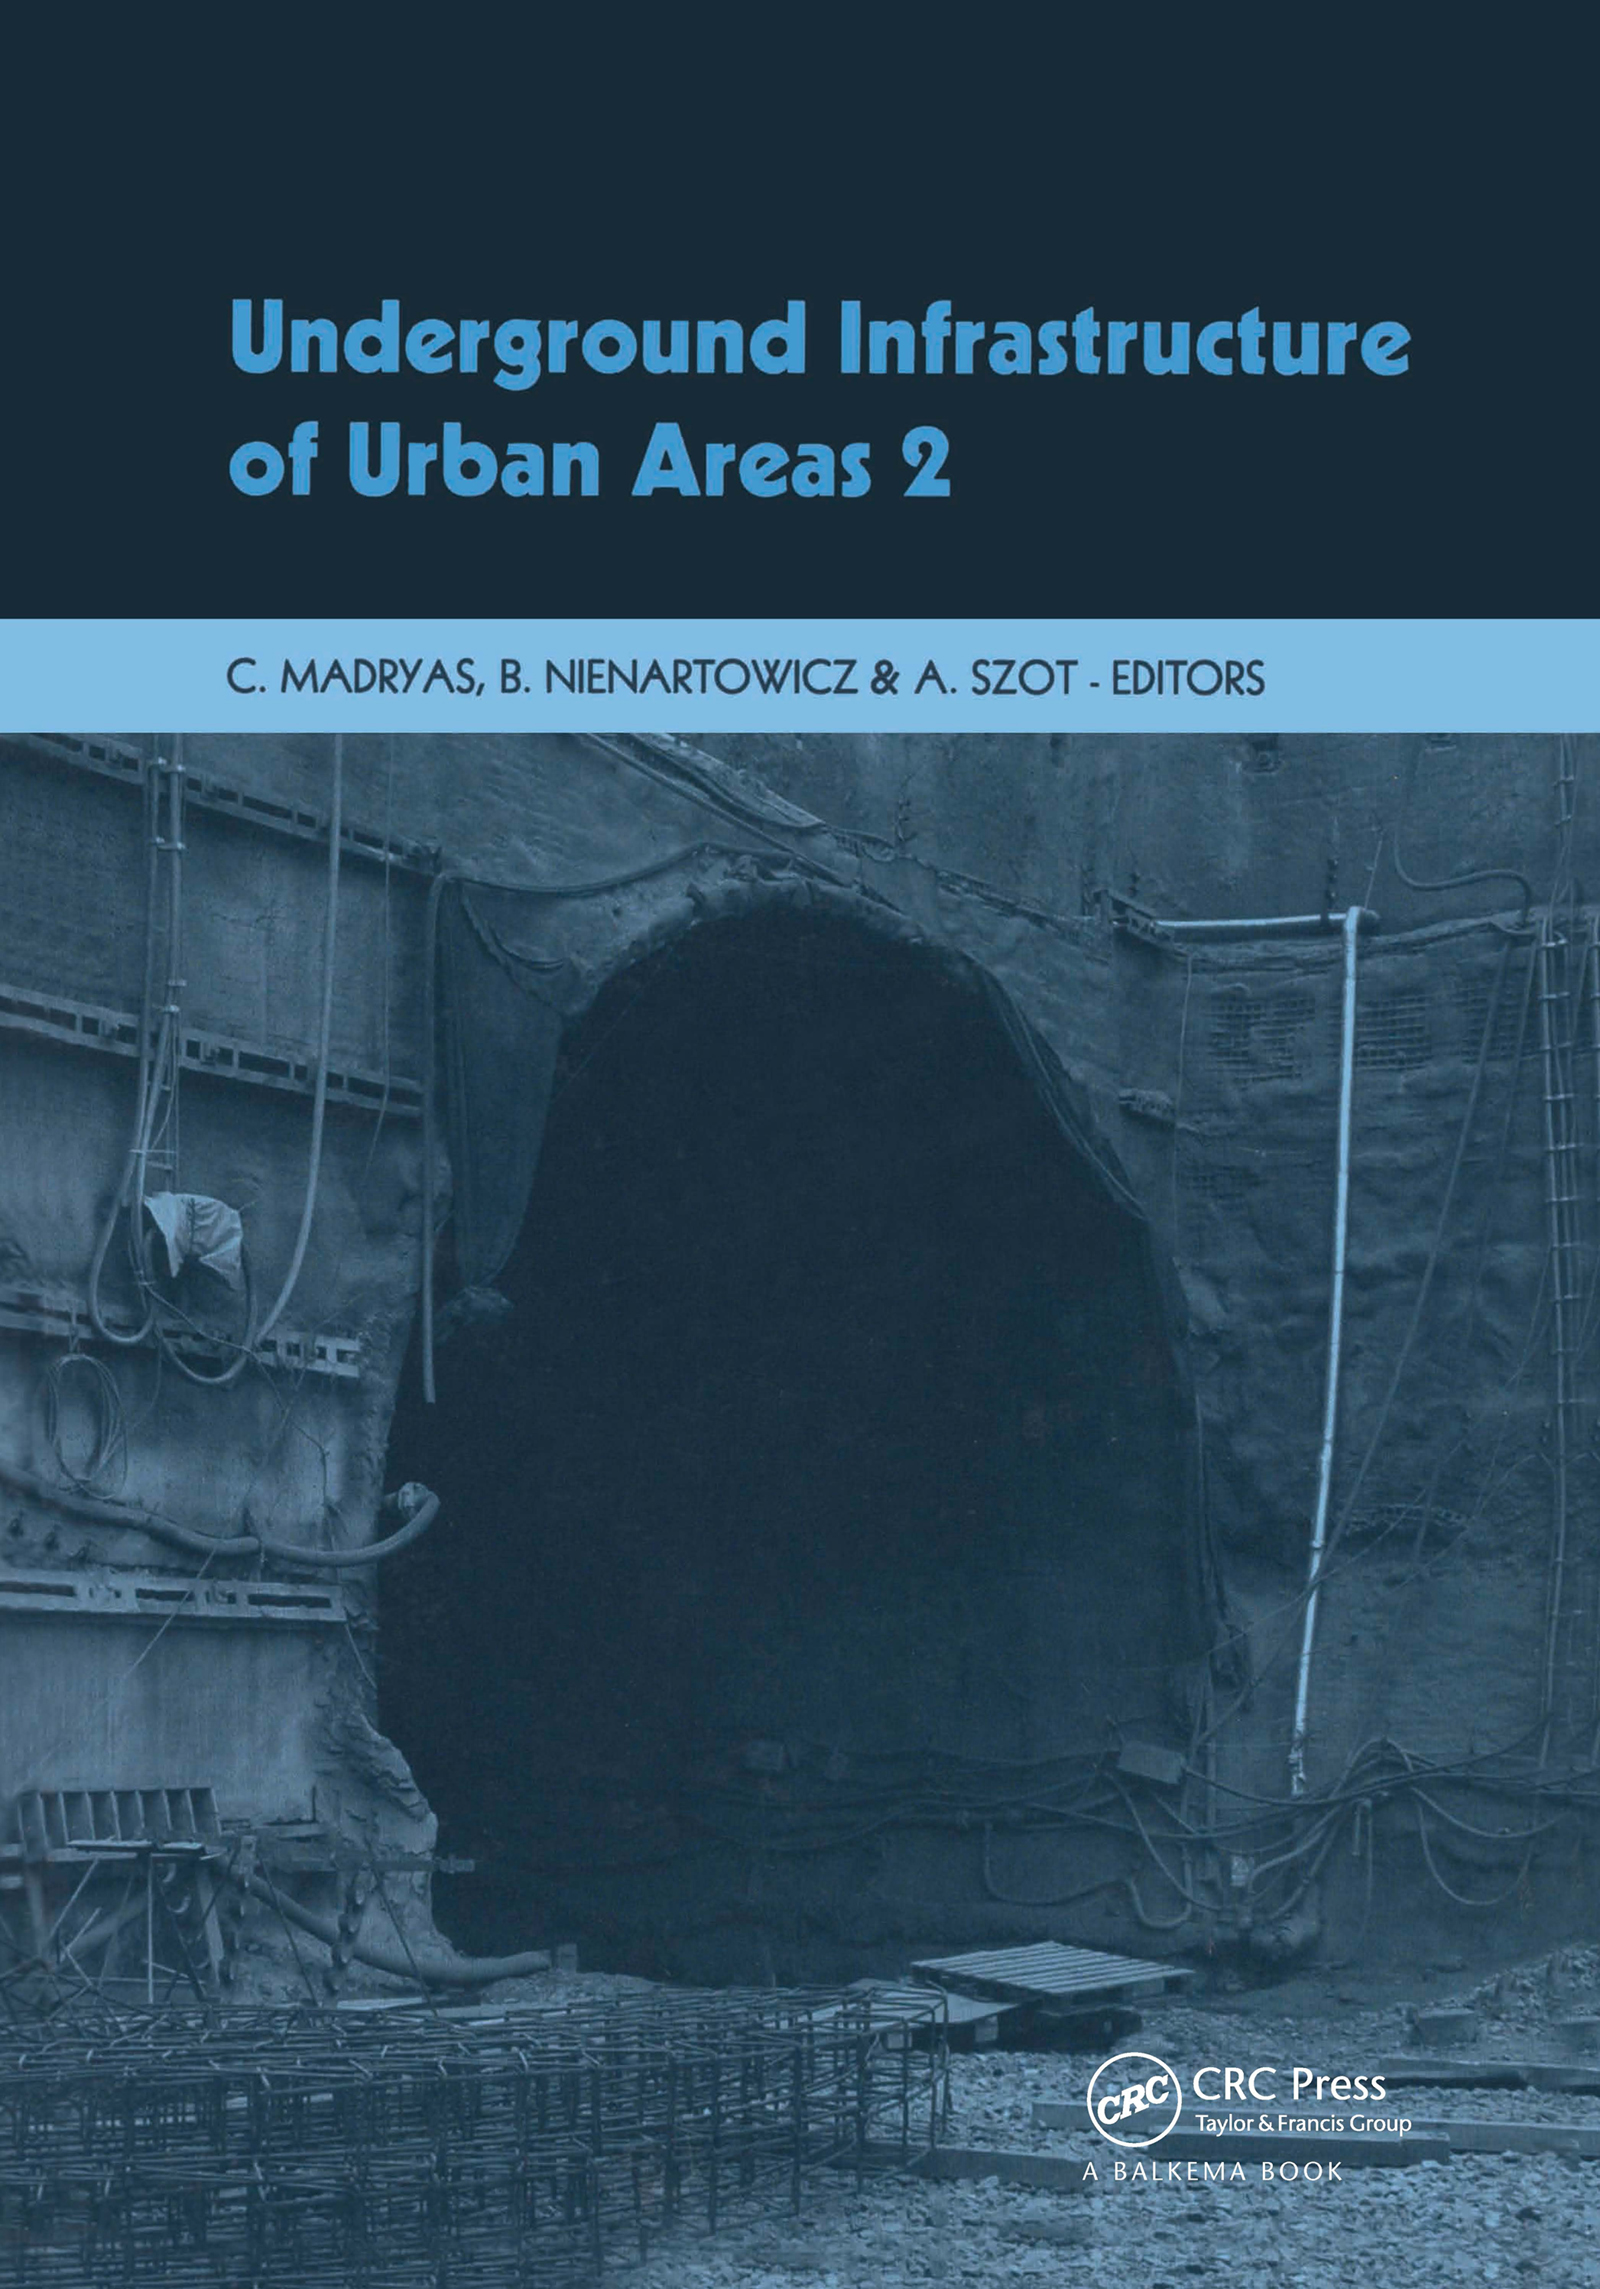 Underground Infrastructure of Urban Areas 2: 1st Edition (Pack - Book and CD) book cover